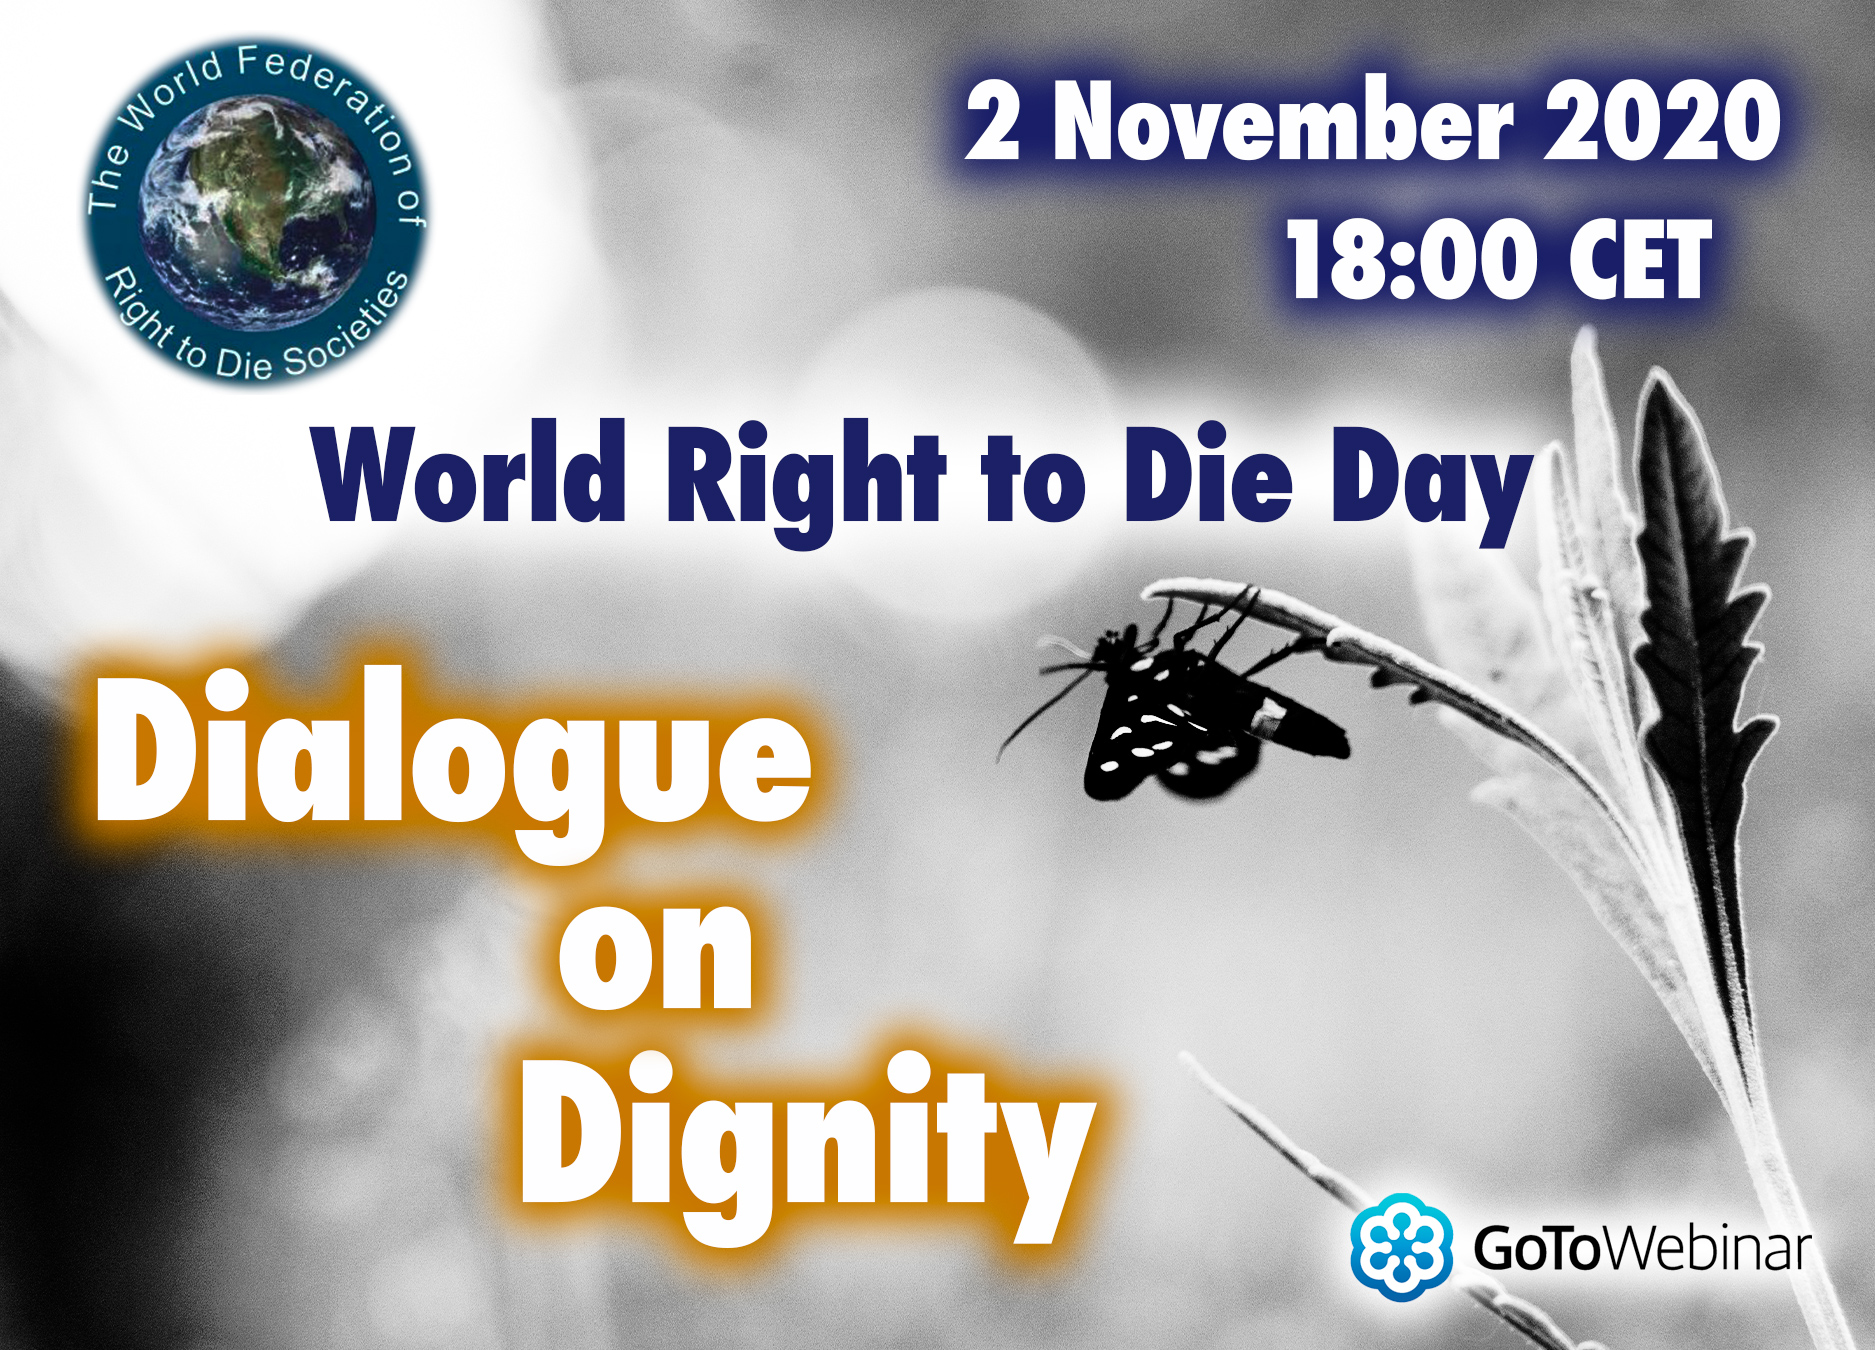 World Right to Die Day